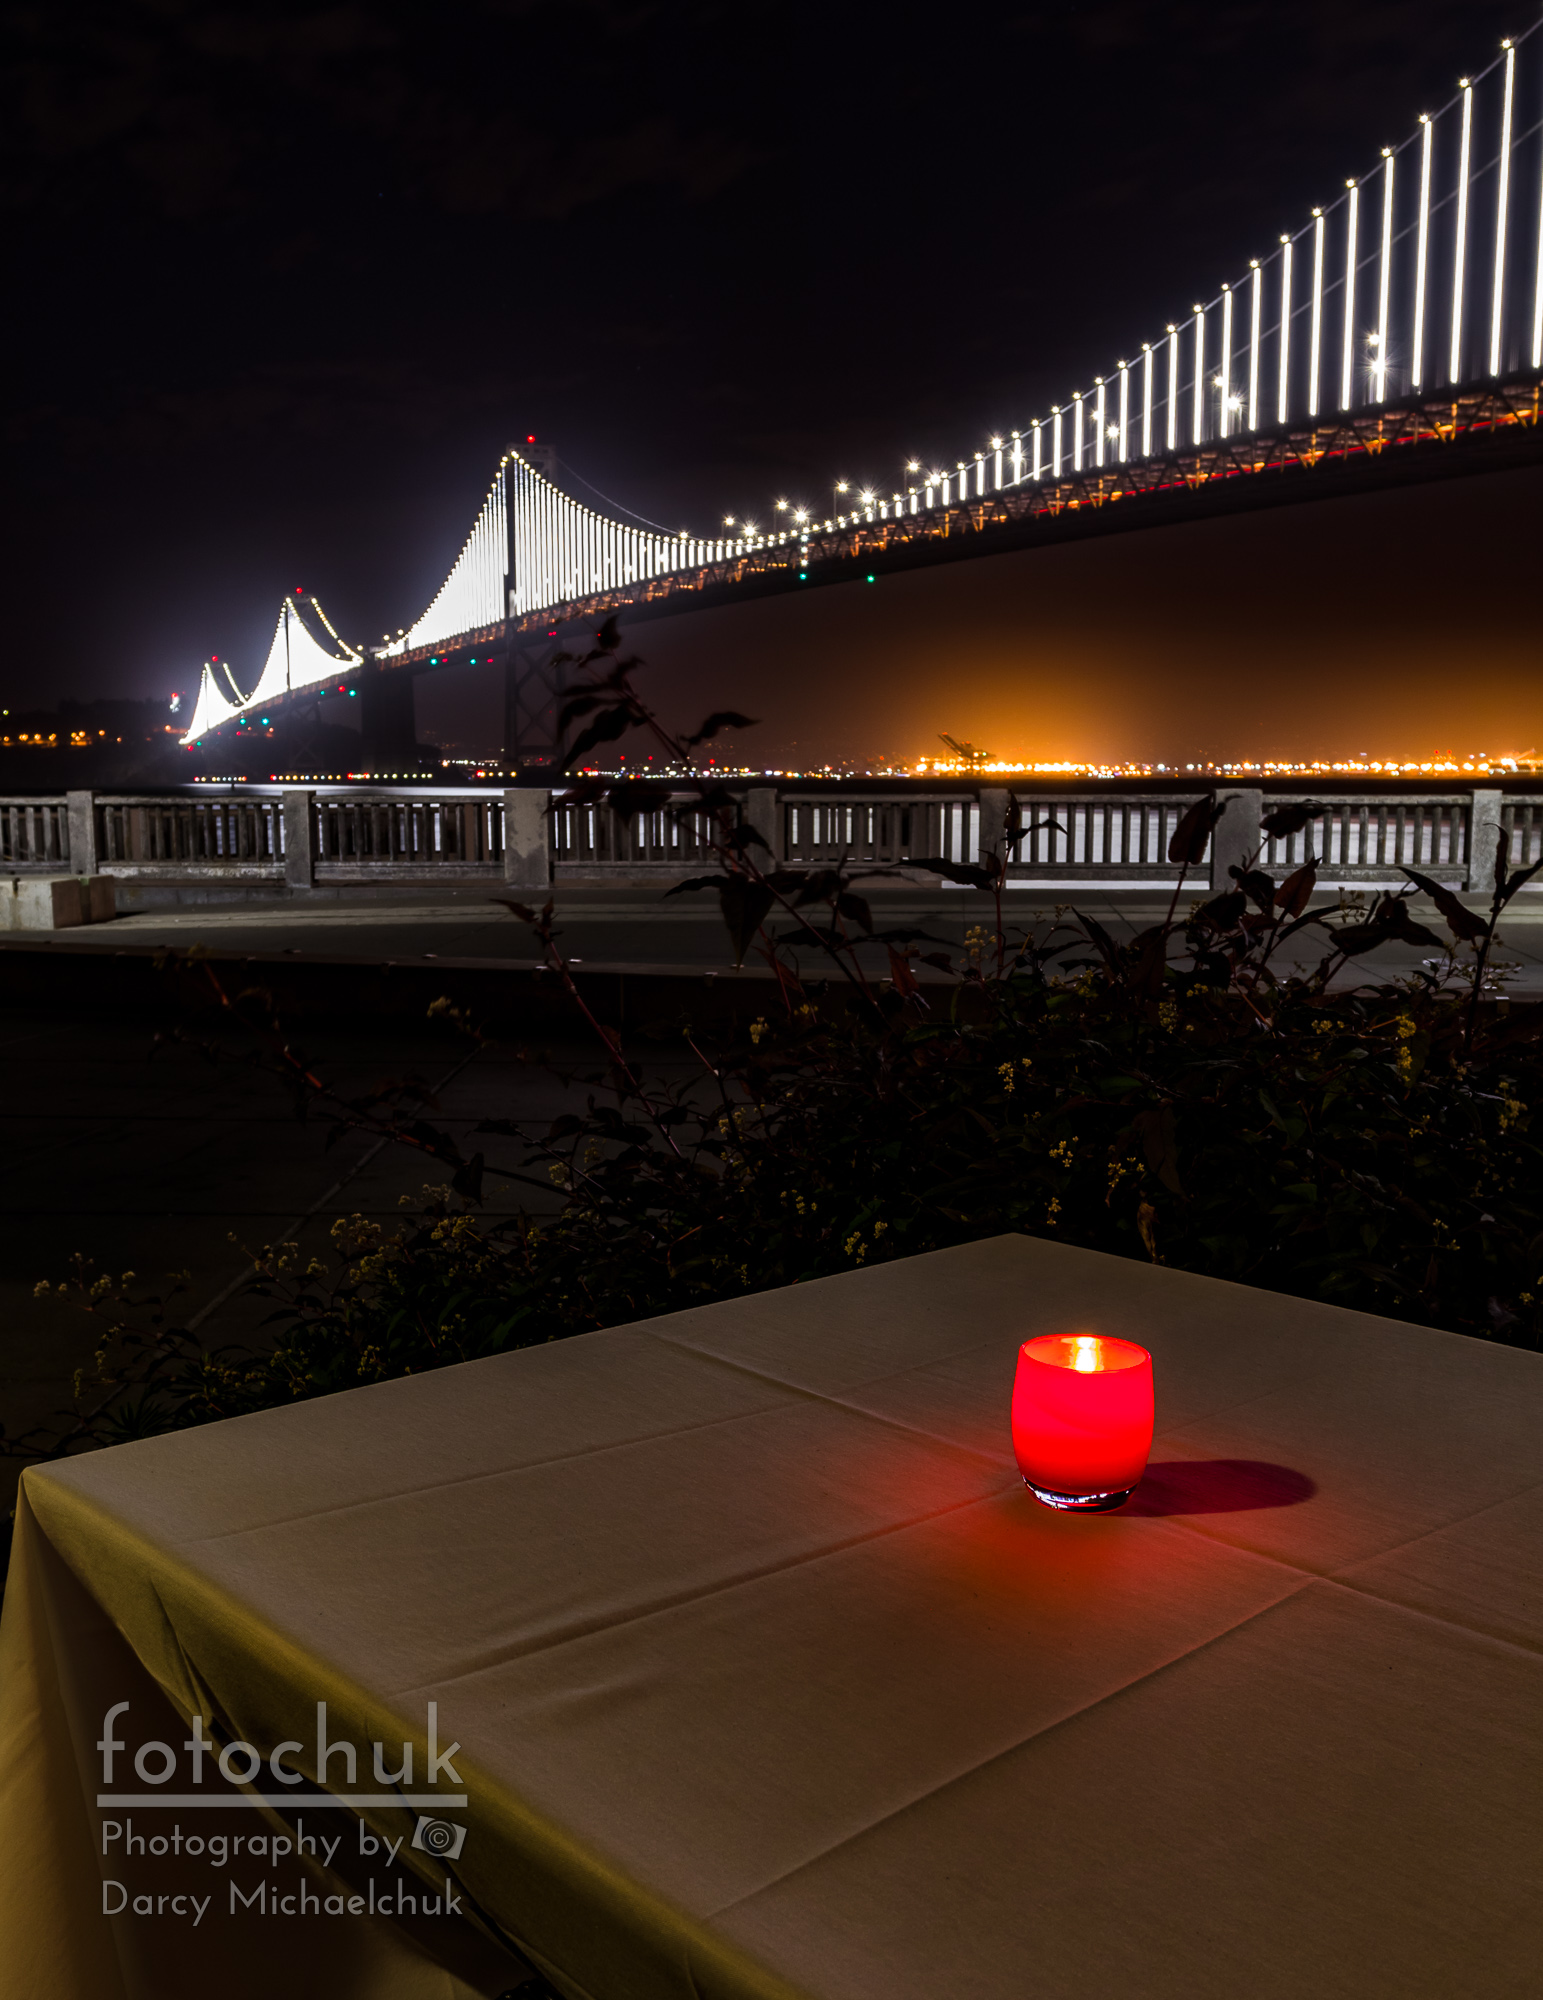 Candle Lit Table Under the Bridge